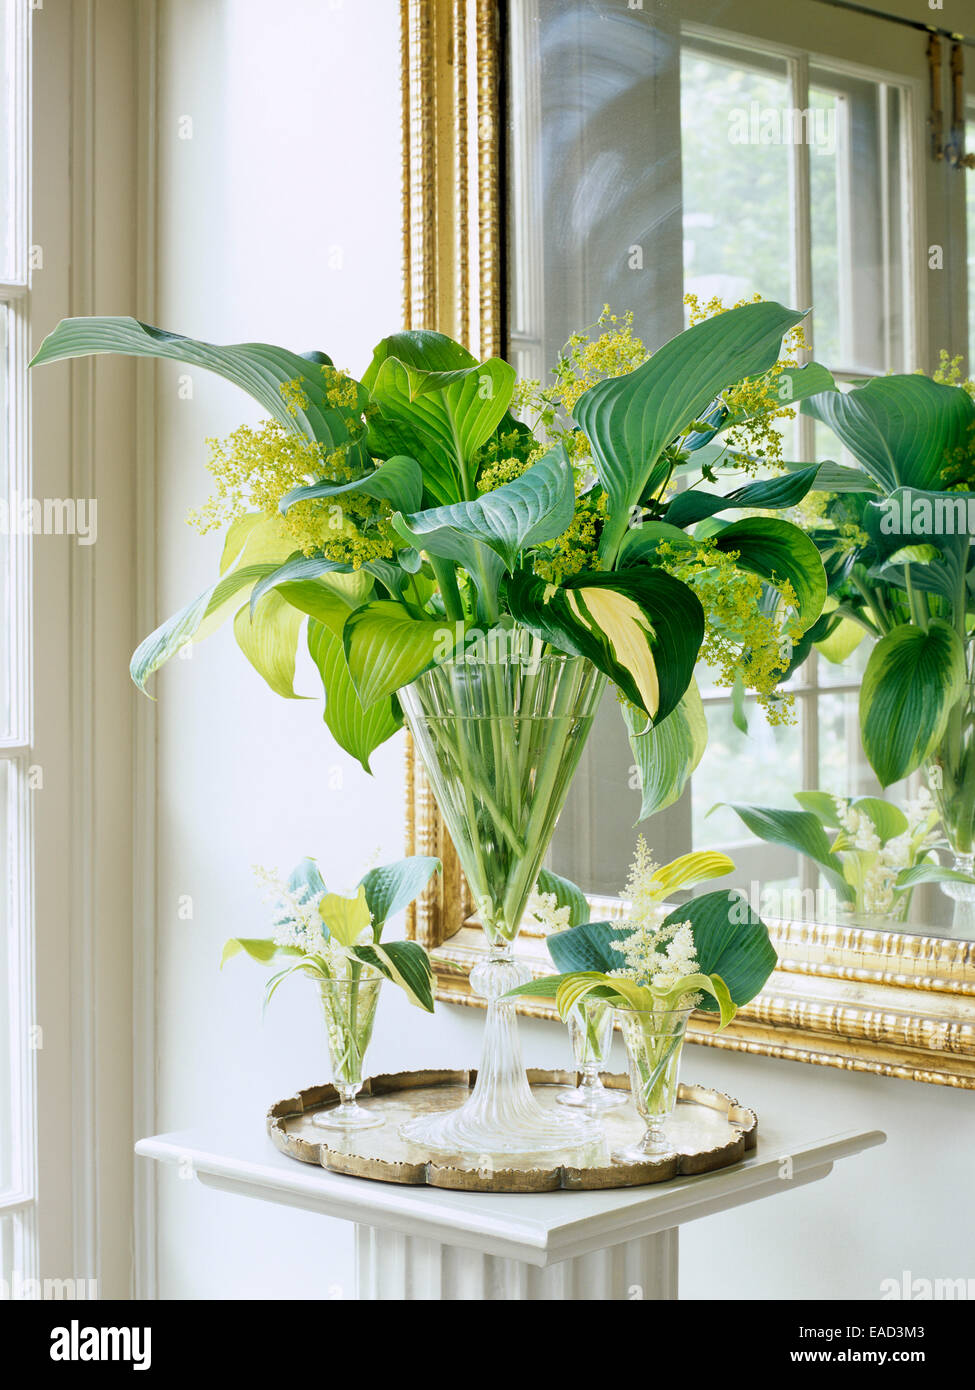 vase with boquet made from Hosta leaves - Stock Image